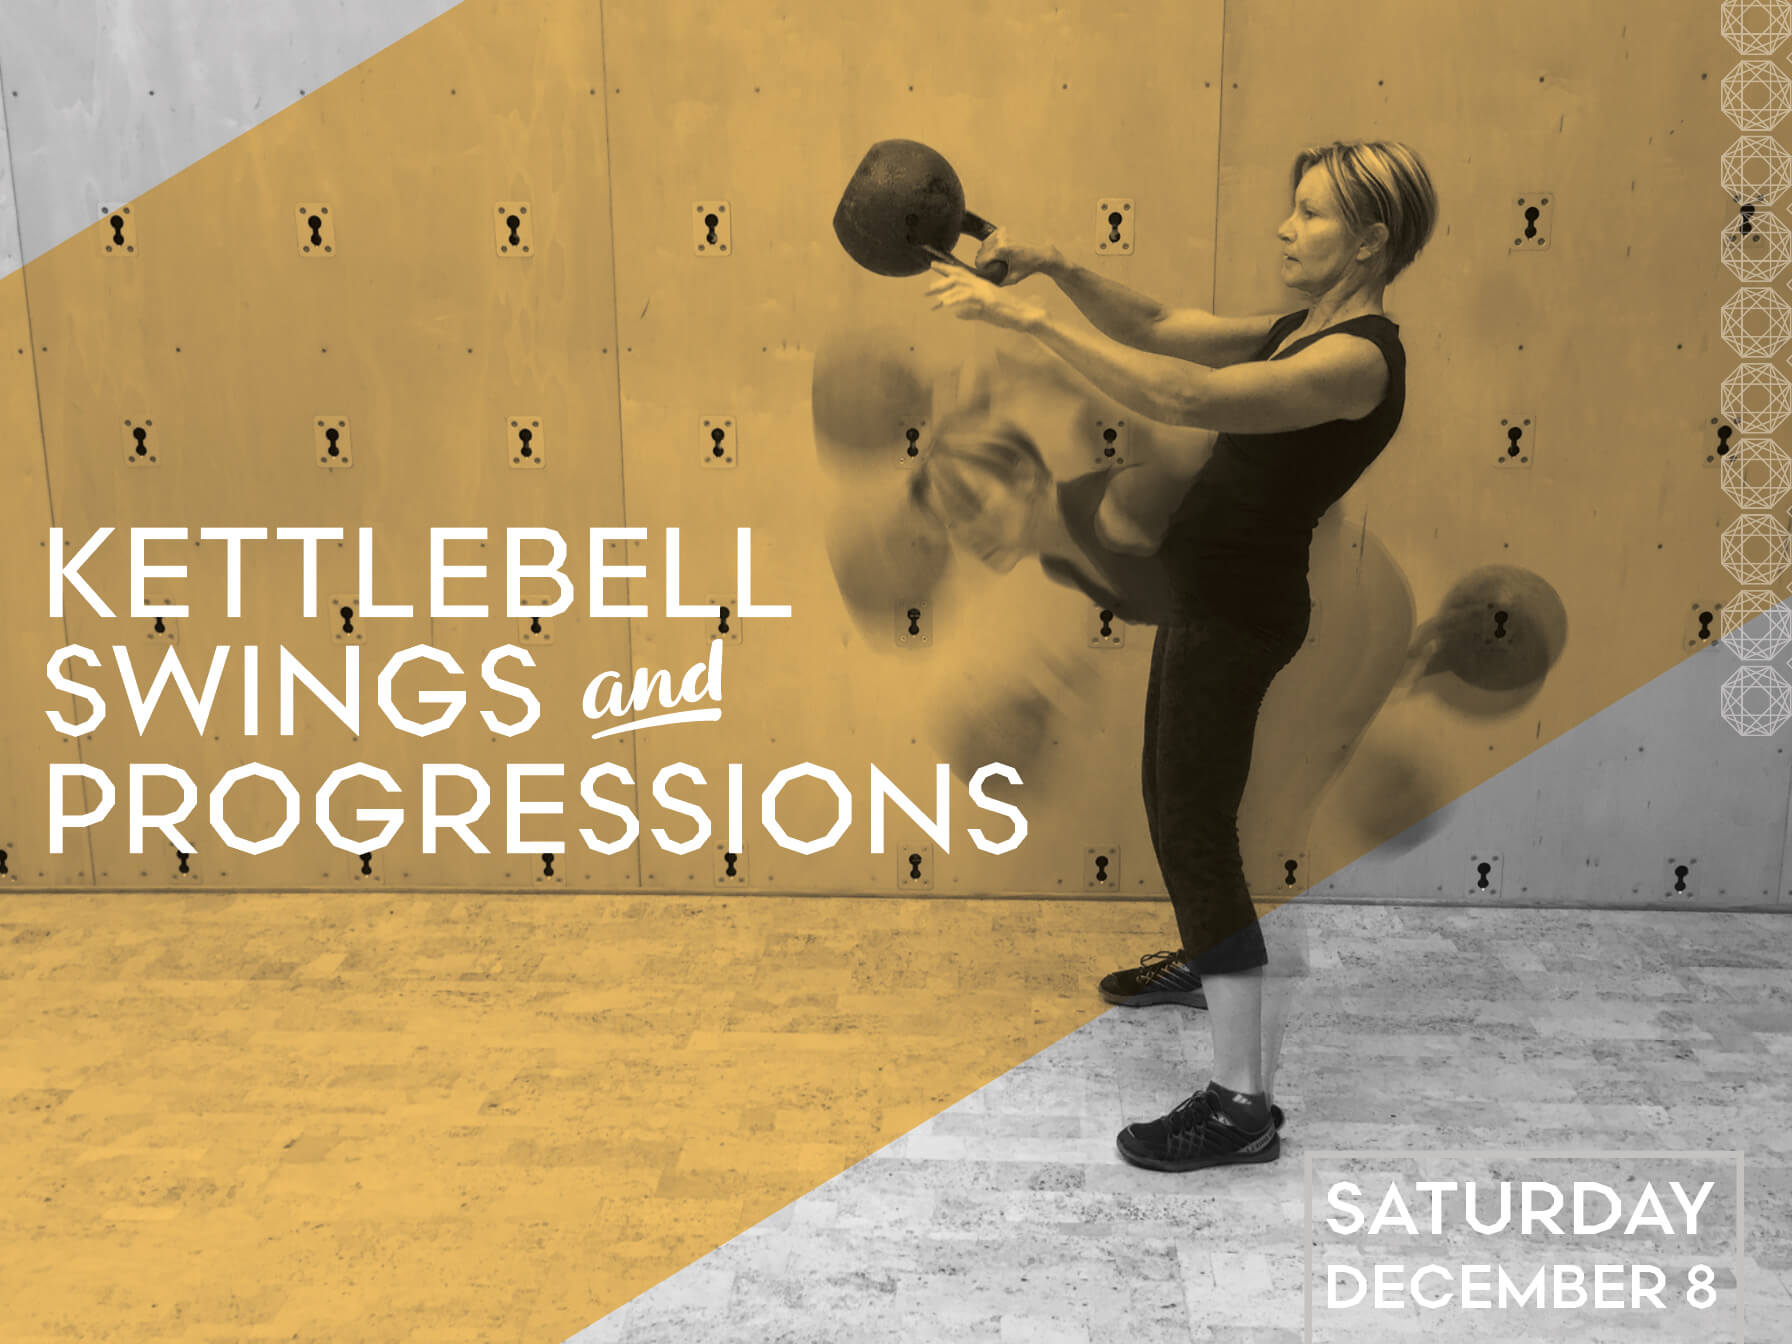 Kettlebell Swings and Progressions